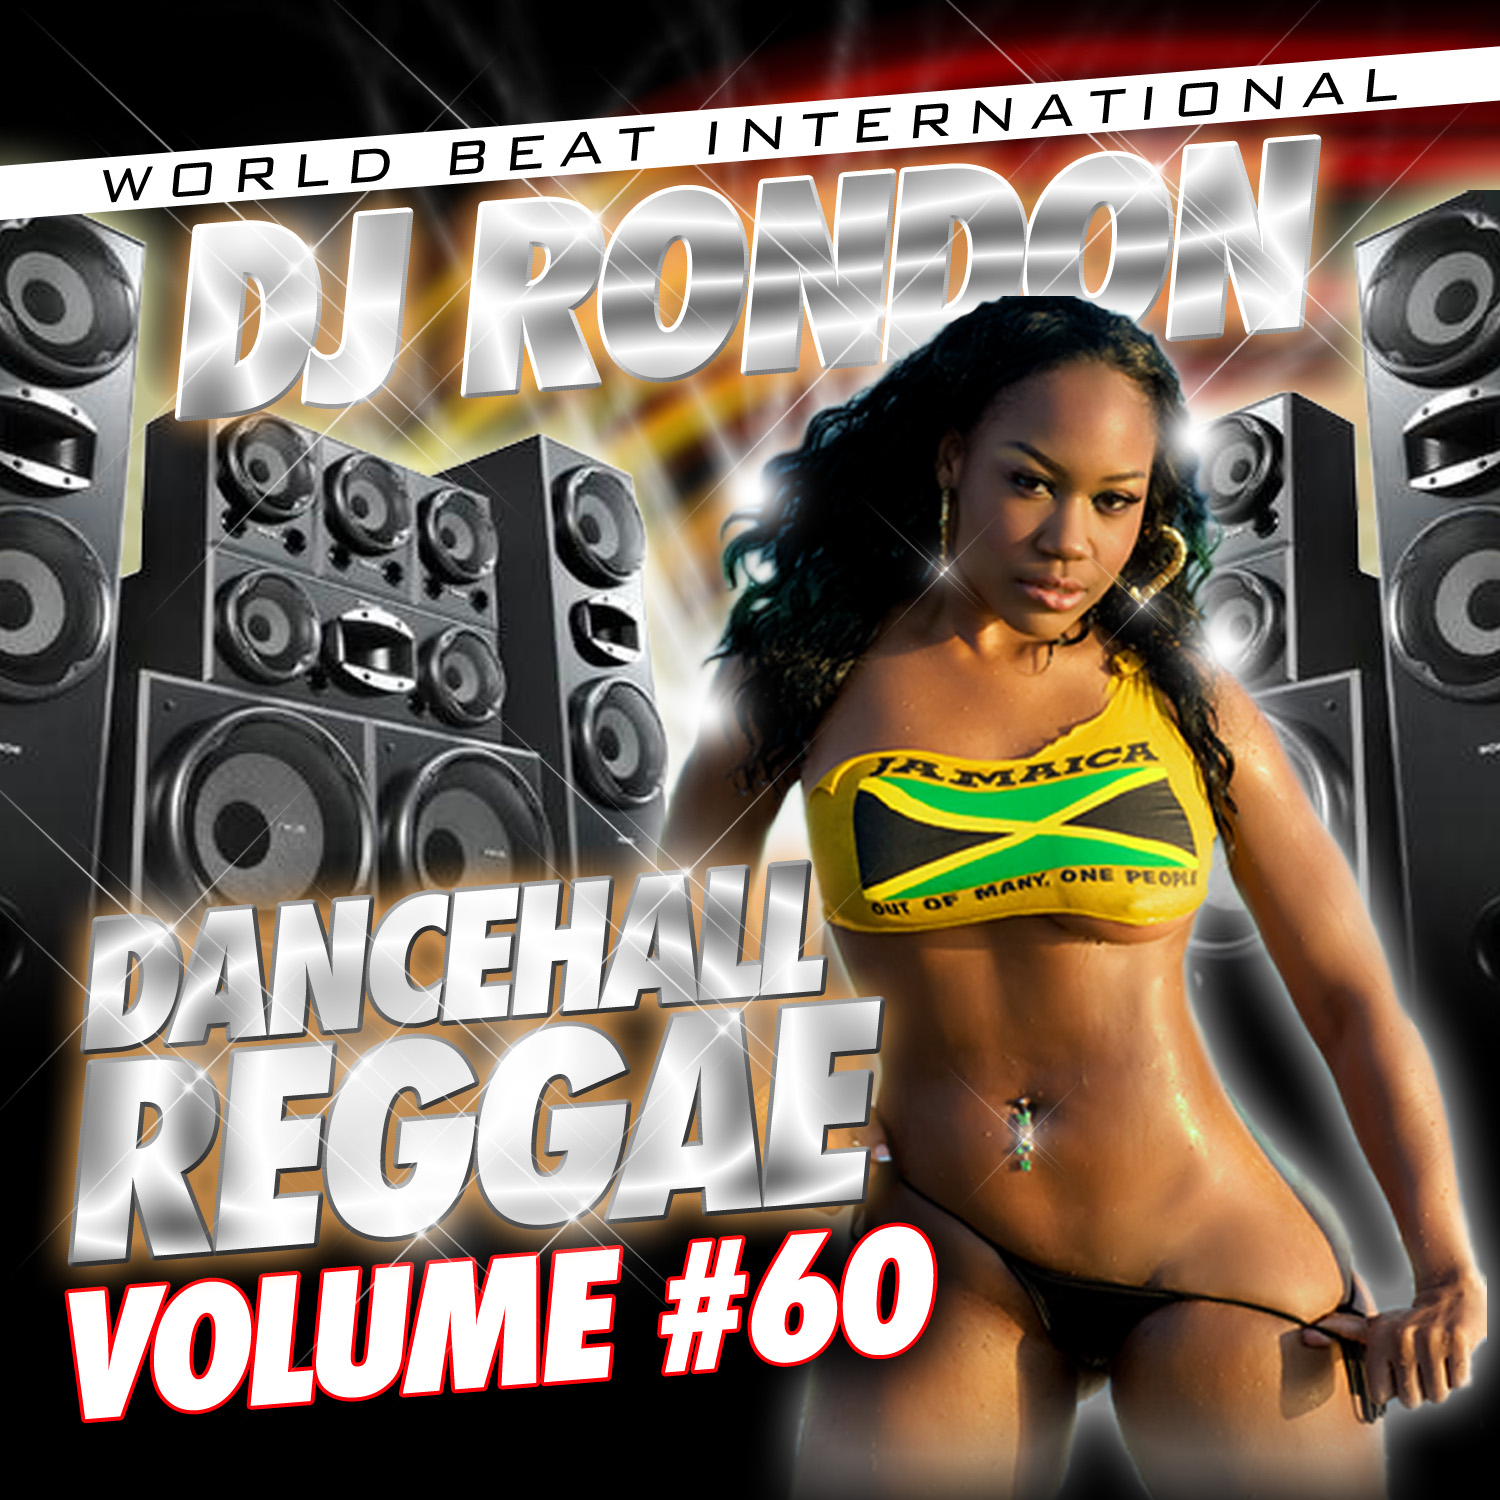 DANCEHALL REGGAE VOL. 60 (DWLN ONLY)